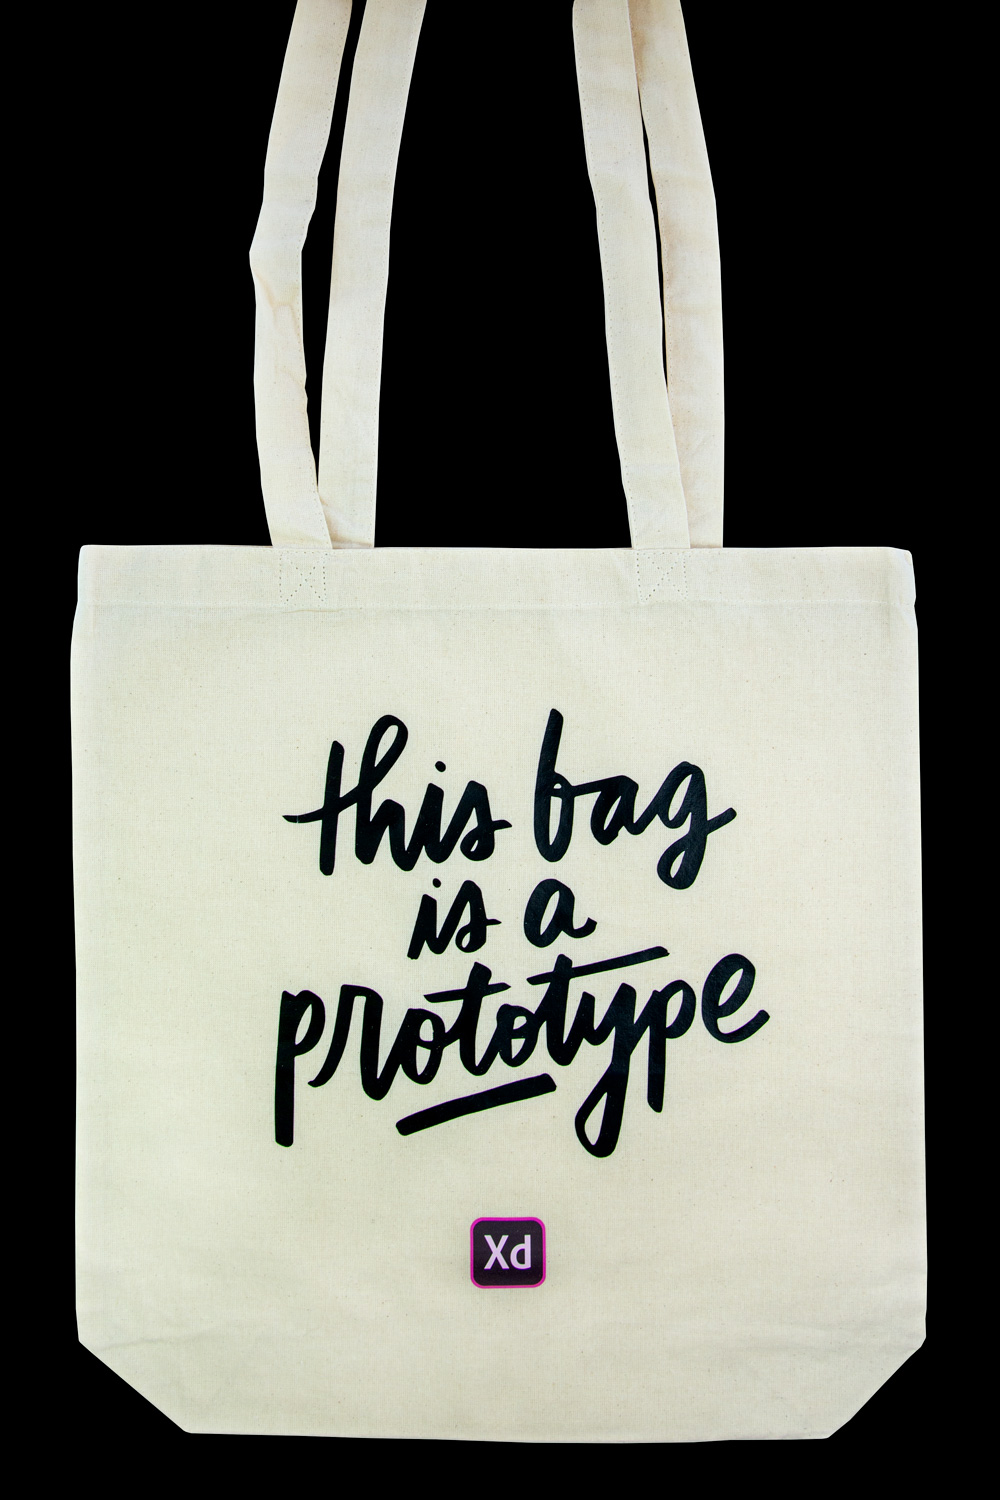 Custom Tote Bag At Events.jpg